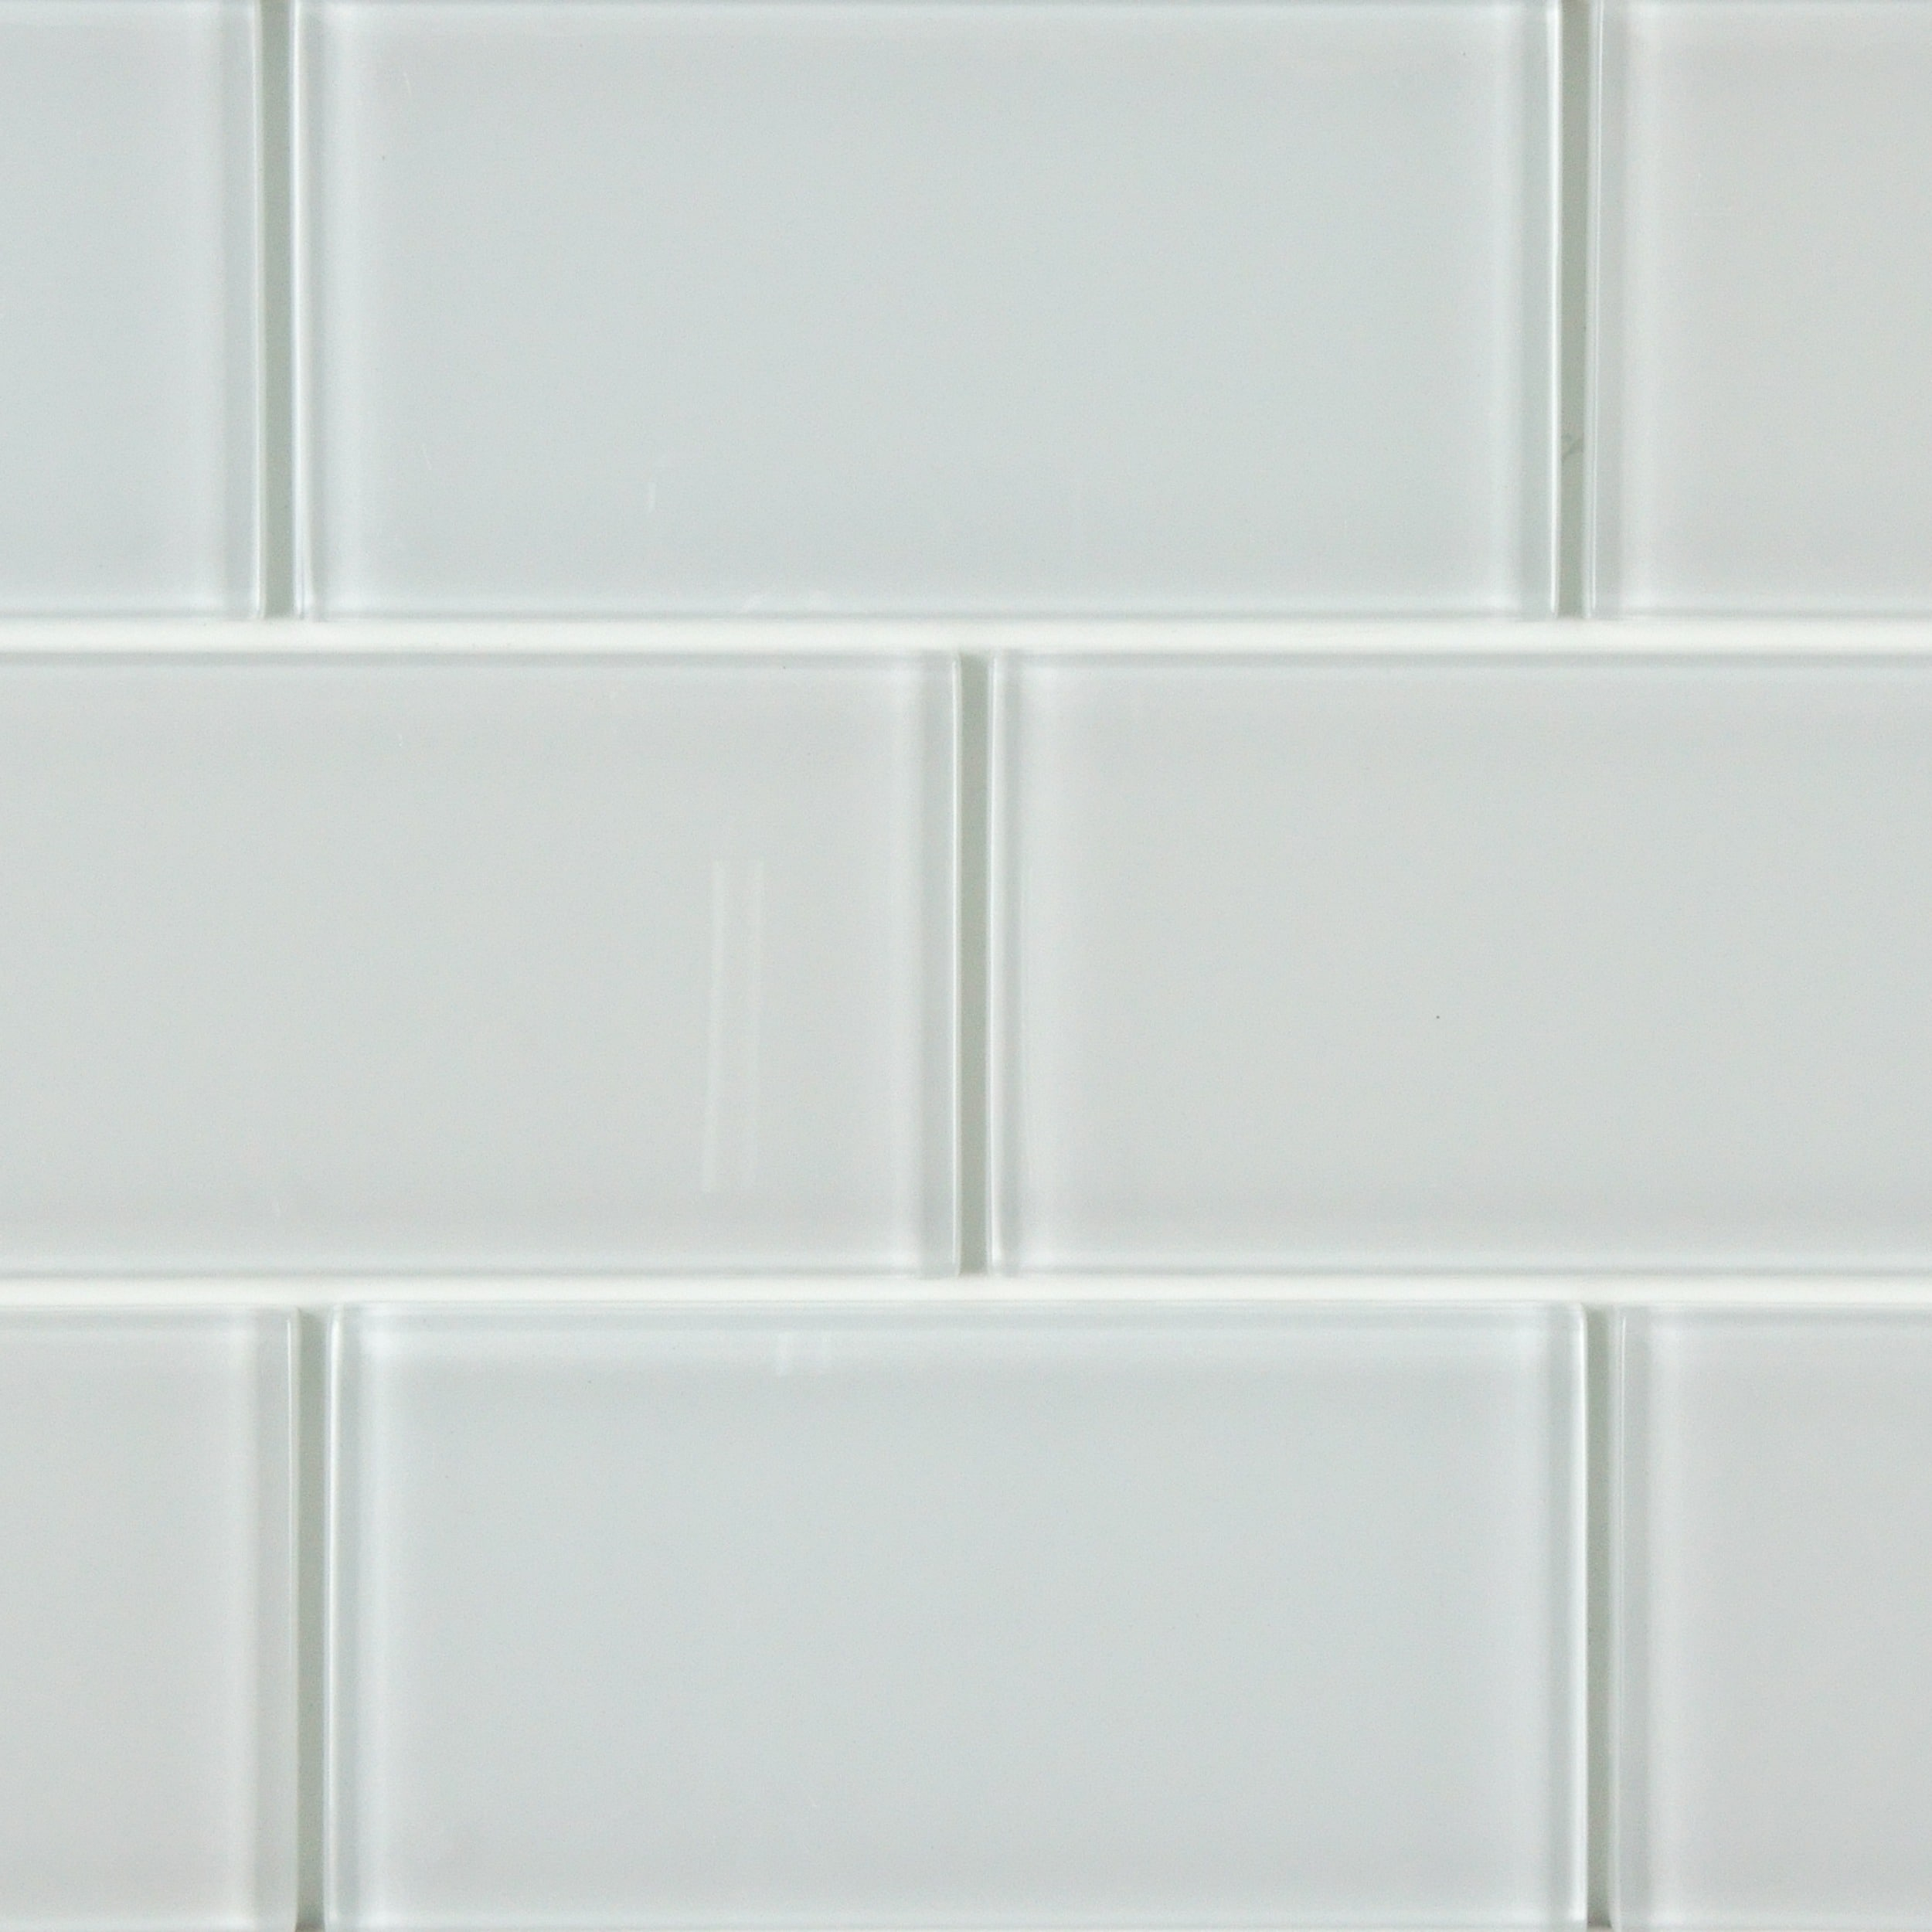 Fine 1950S Floor Tiles Thick 1X2 Subway Tile Shaped 4 Inch Tile Backsplash 4 Tile Patterns For Floors Young 4X4 Ceramic Tiles RedAlmond Subway Tile SomerTile 3x6 Inch Reflections Subway Ice White Glass Wall Tile ..